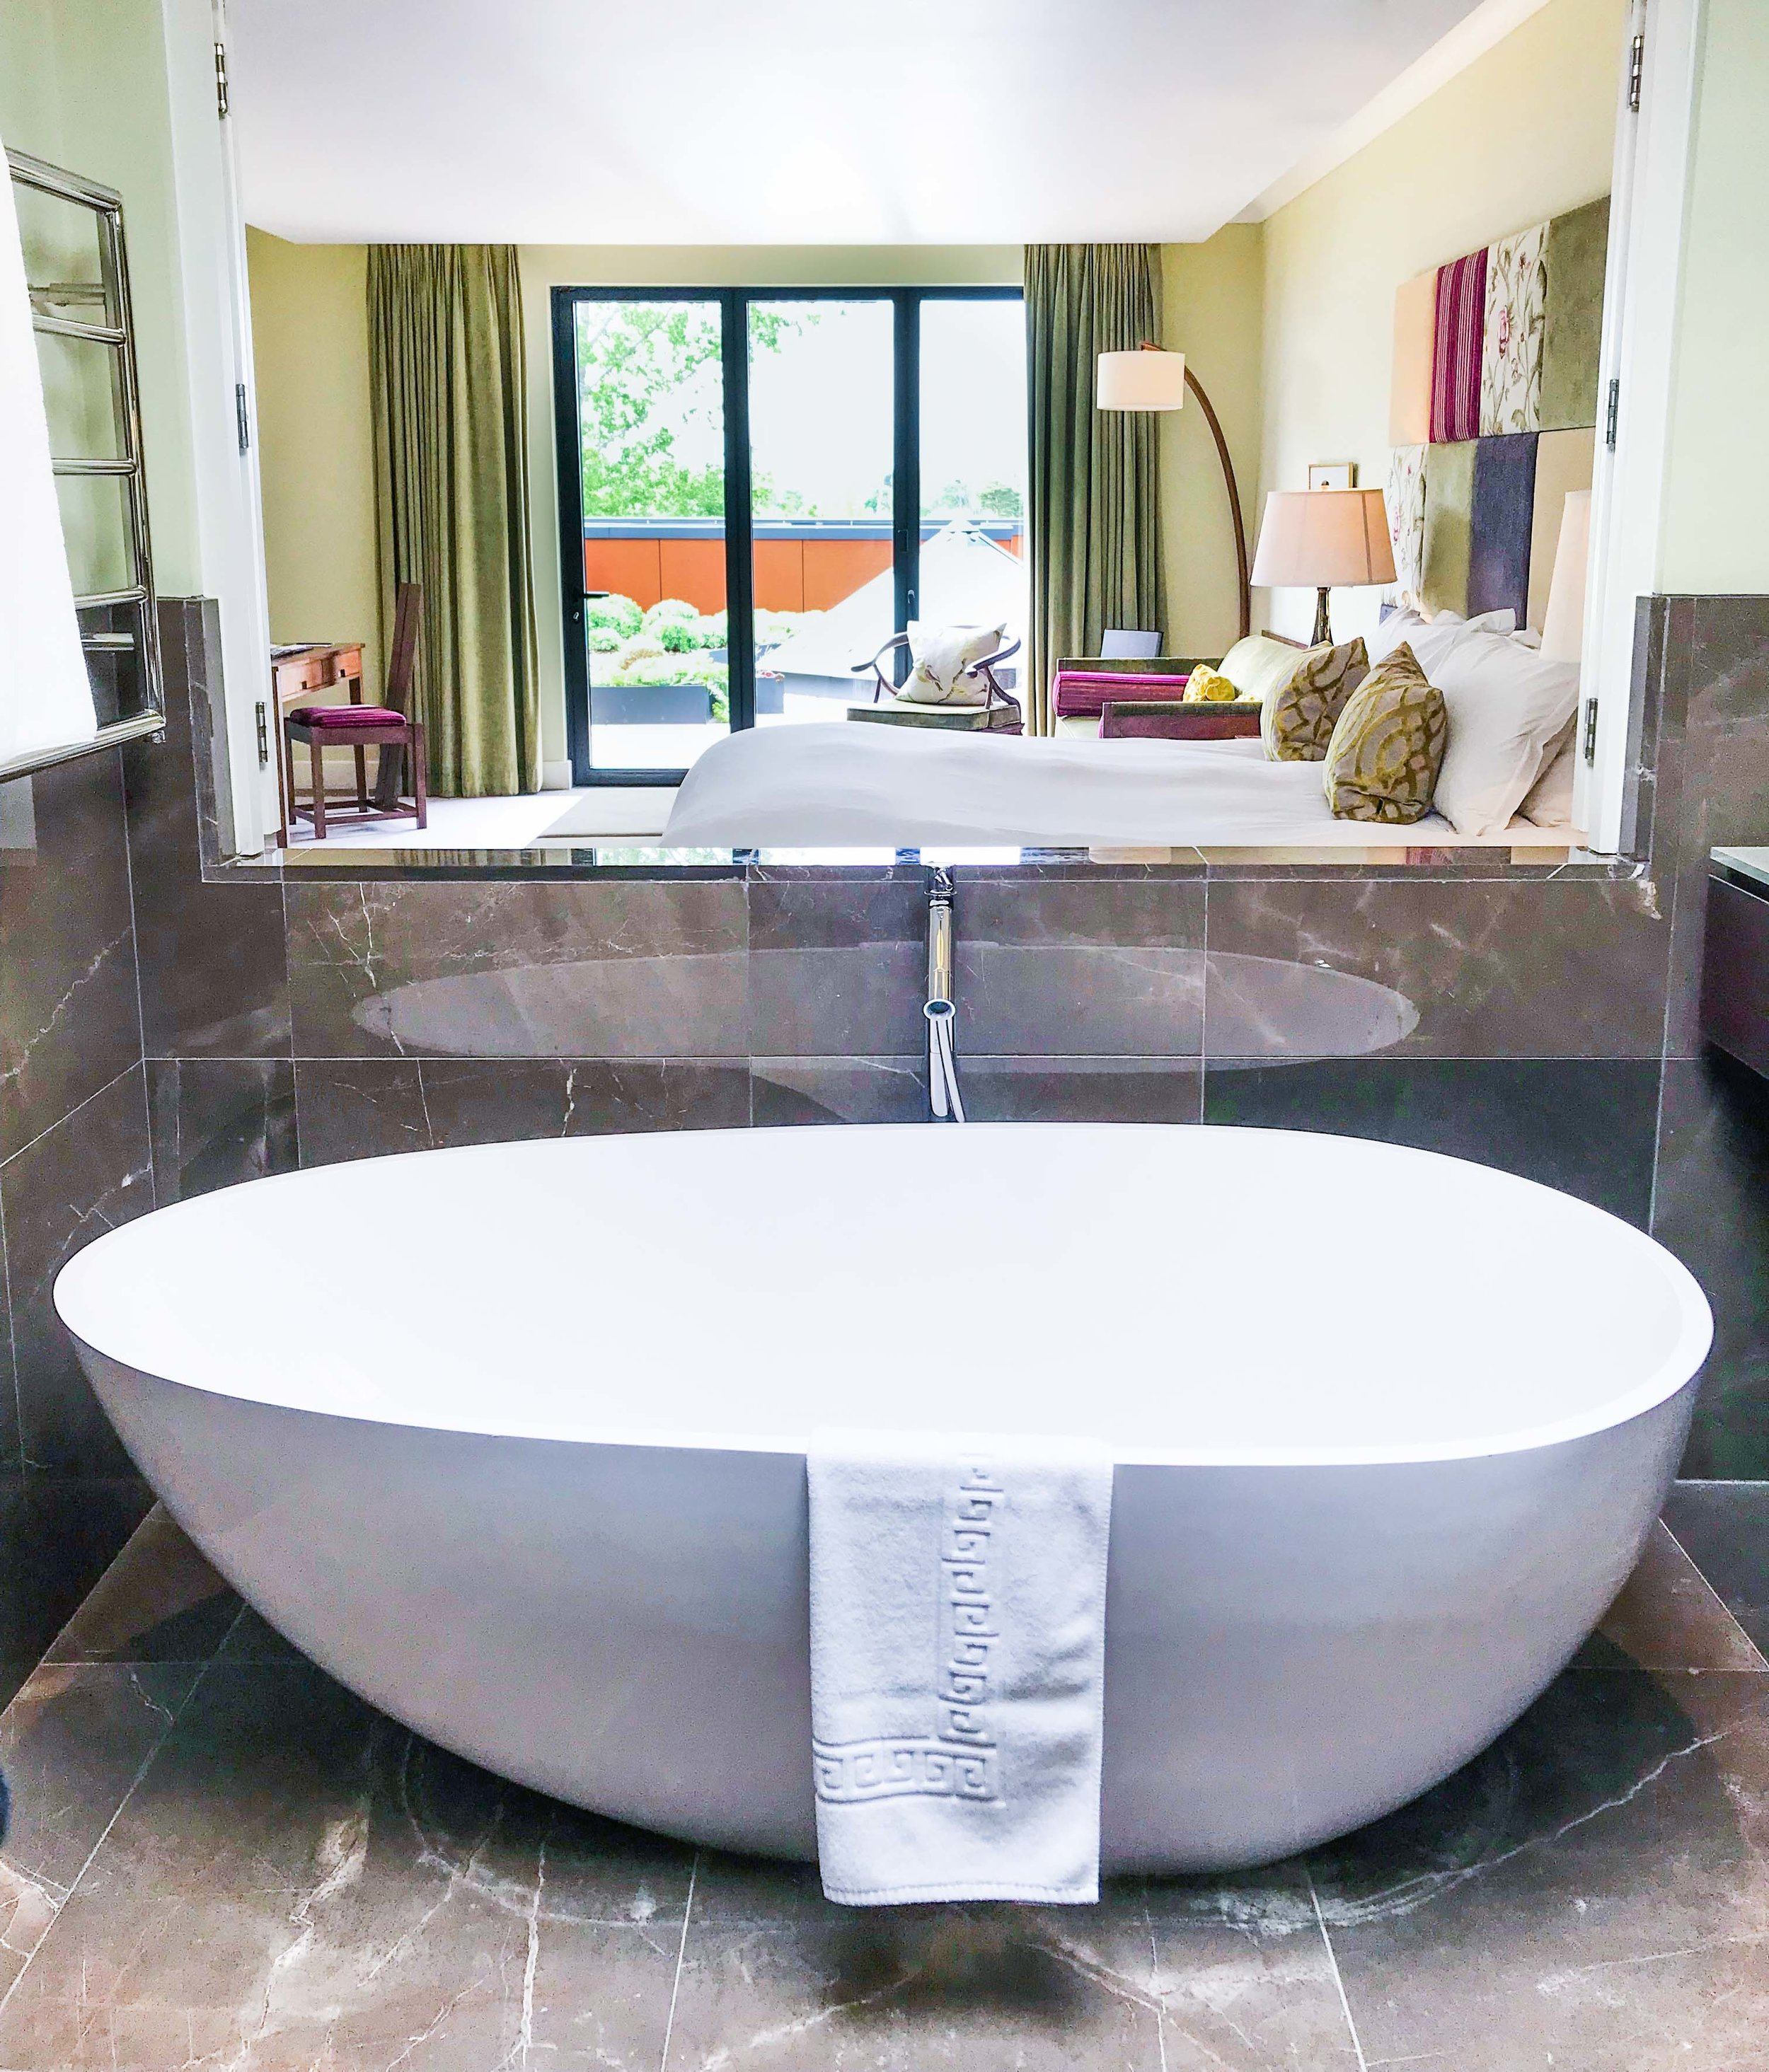 Ockenden Manor Hotel & Spa - The spa suite